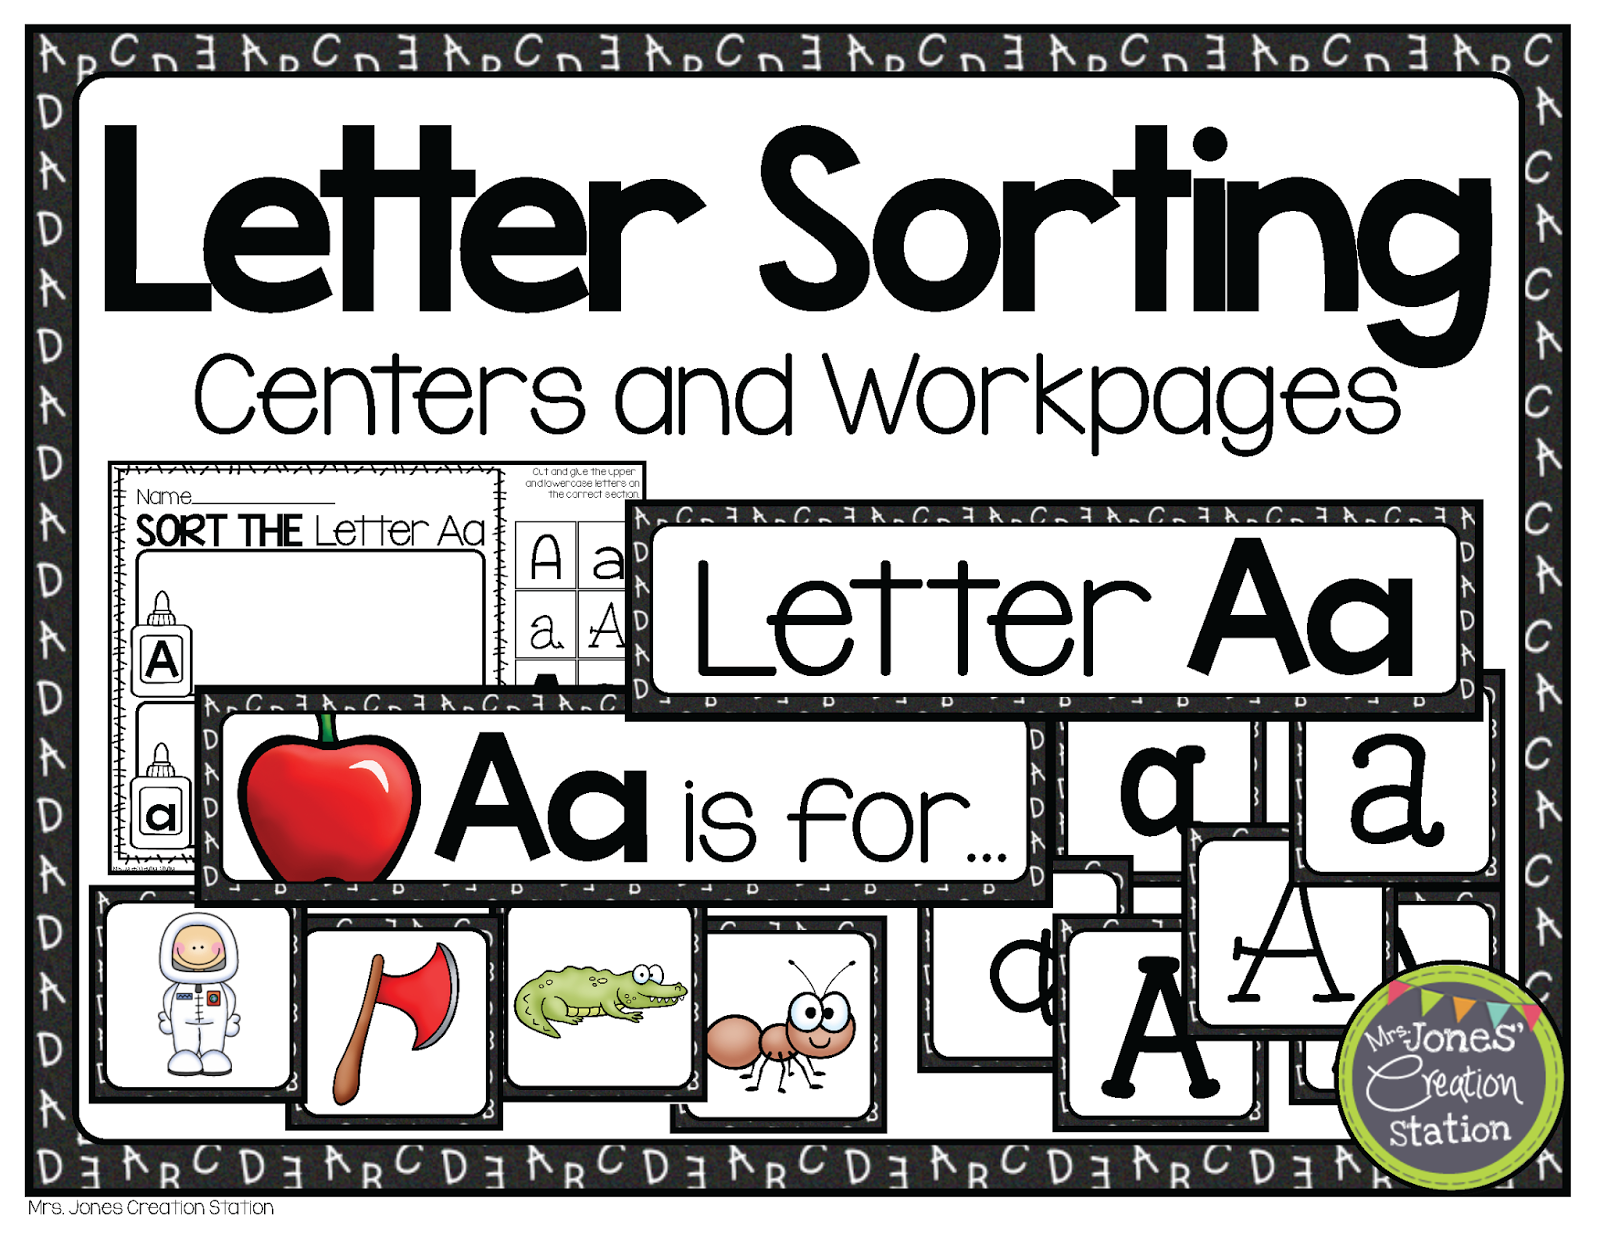 http://www.teacherspayteachers.com/Product/Alphabet-Letter-Sorting-Centers-and-Workpages-1210581